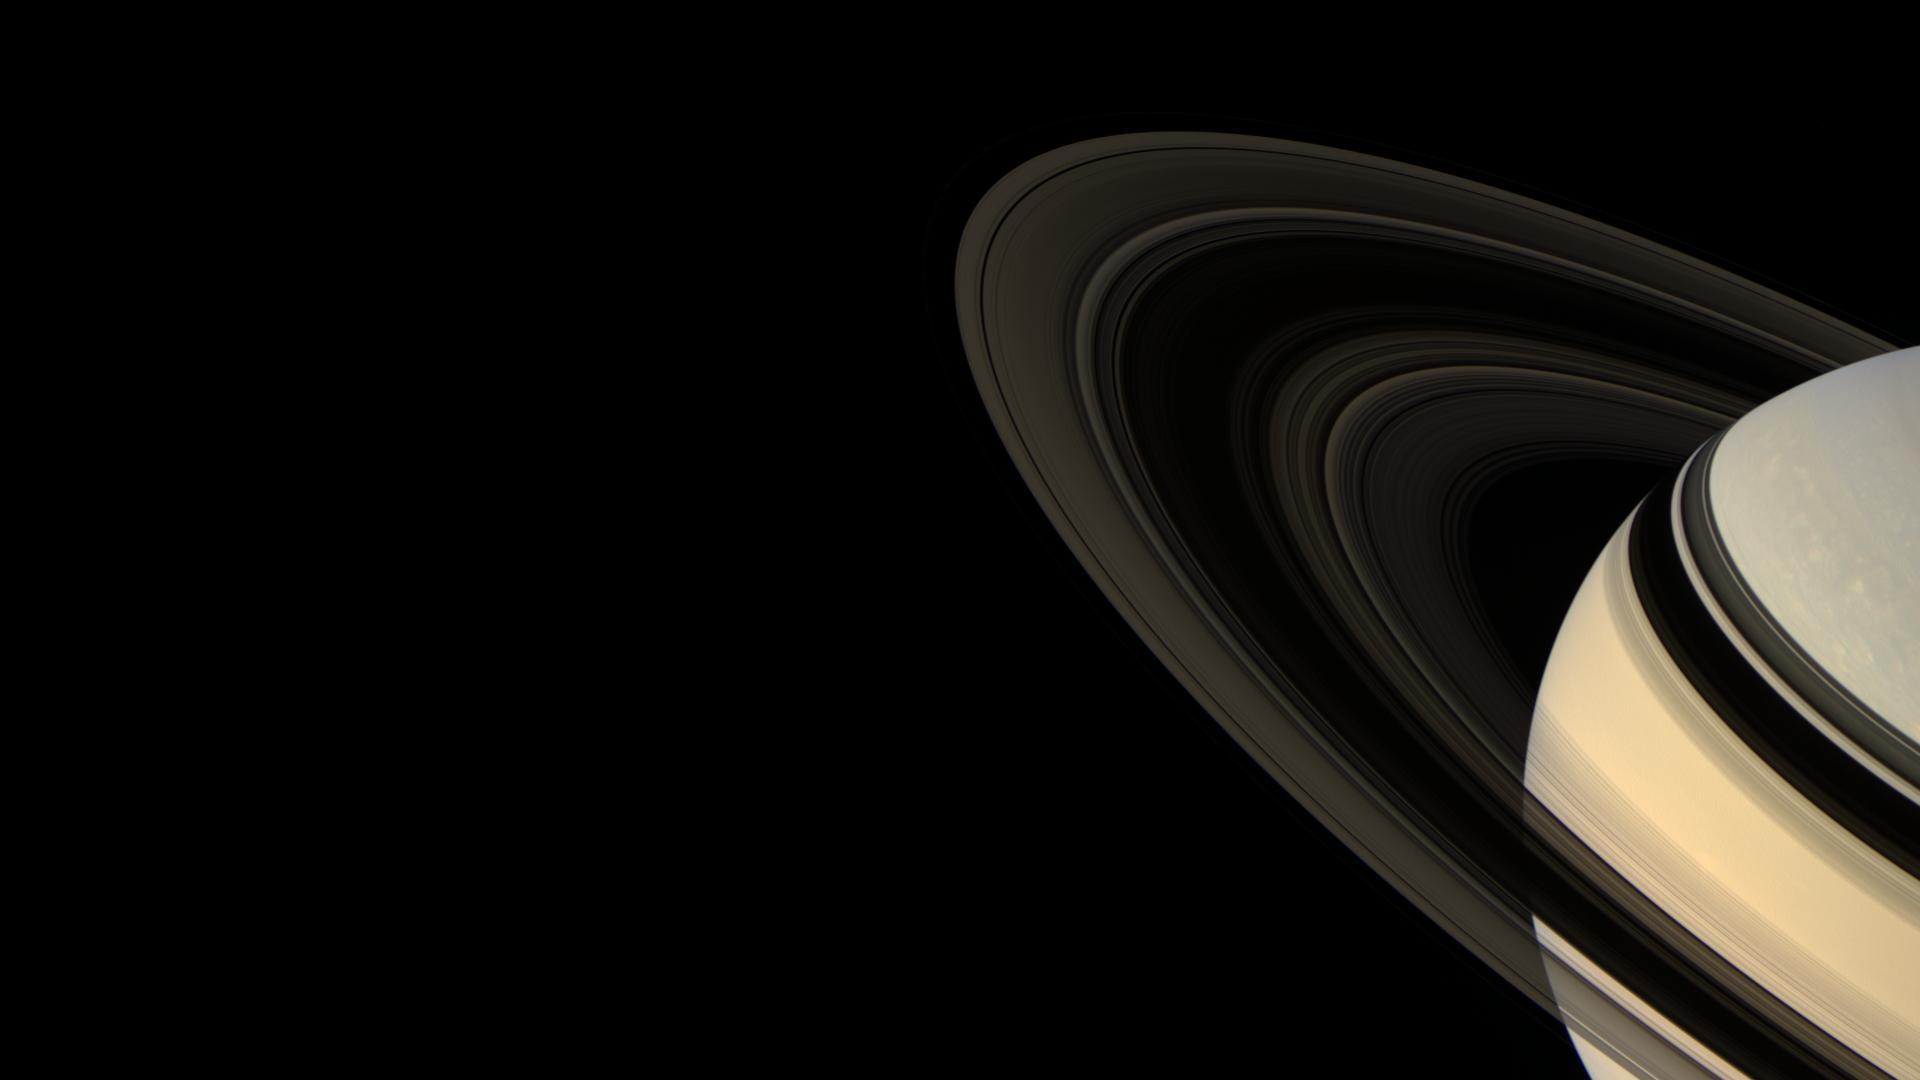 digital images of saturn the planet - photo #23